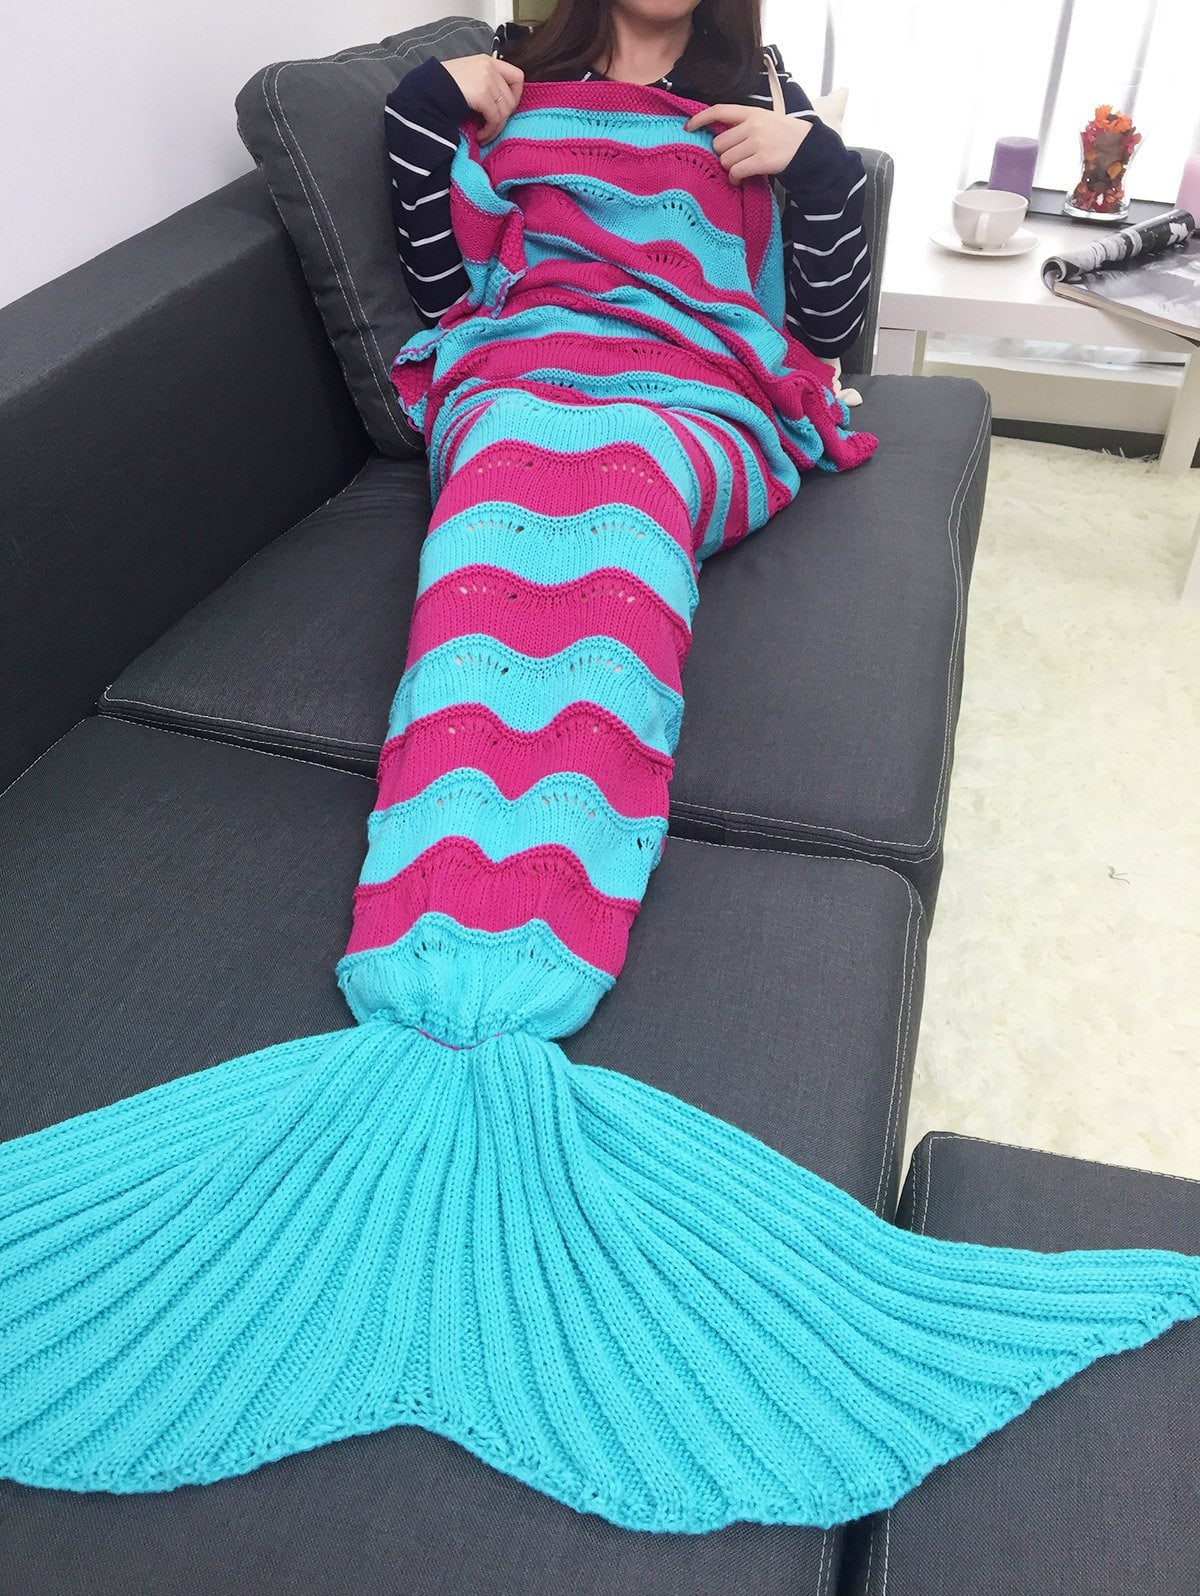 Best Of Warmth Stripe Multicolo Pattern Knitting Mermaid Tail Mermaid Blanket Knitting Pattern Of Unique 42 Models Mermaid Blanket Knitting Pattern